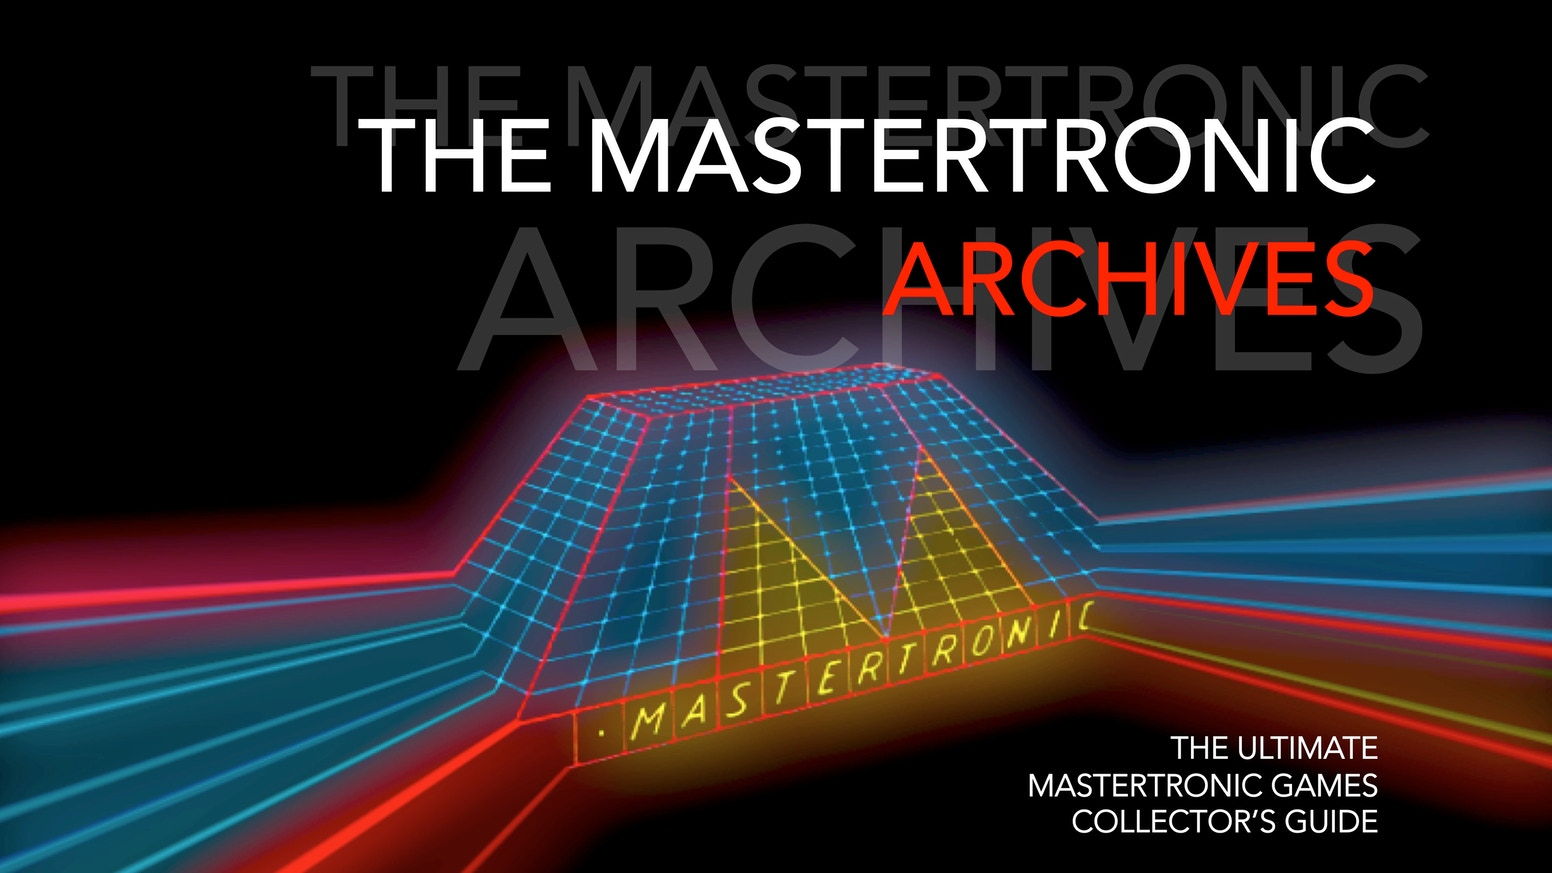 Help us raise funds to produce these historic books detailing the history of Mastertronic budget games.